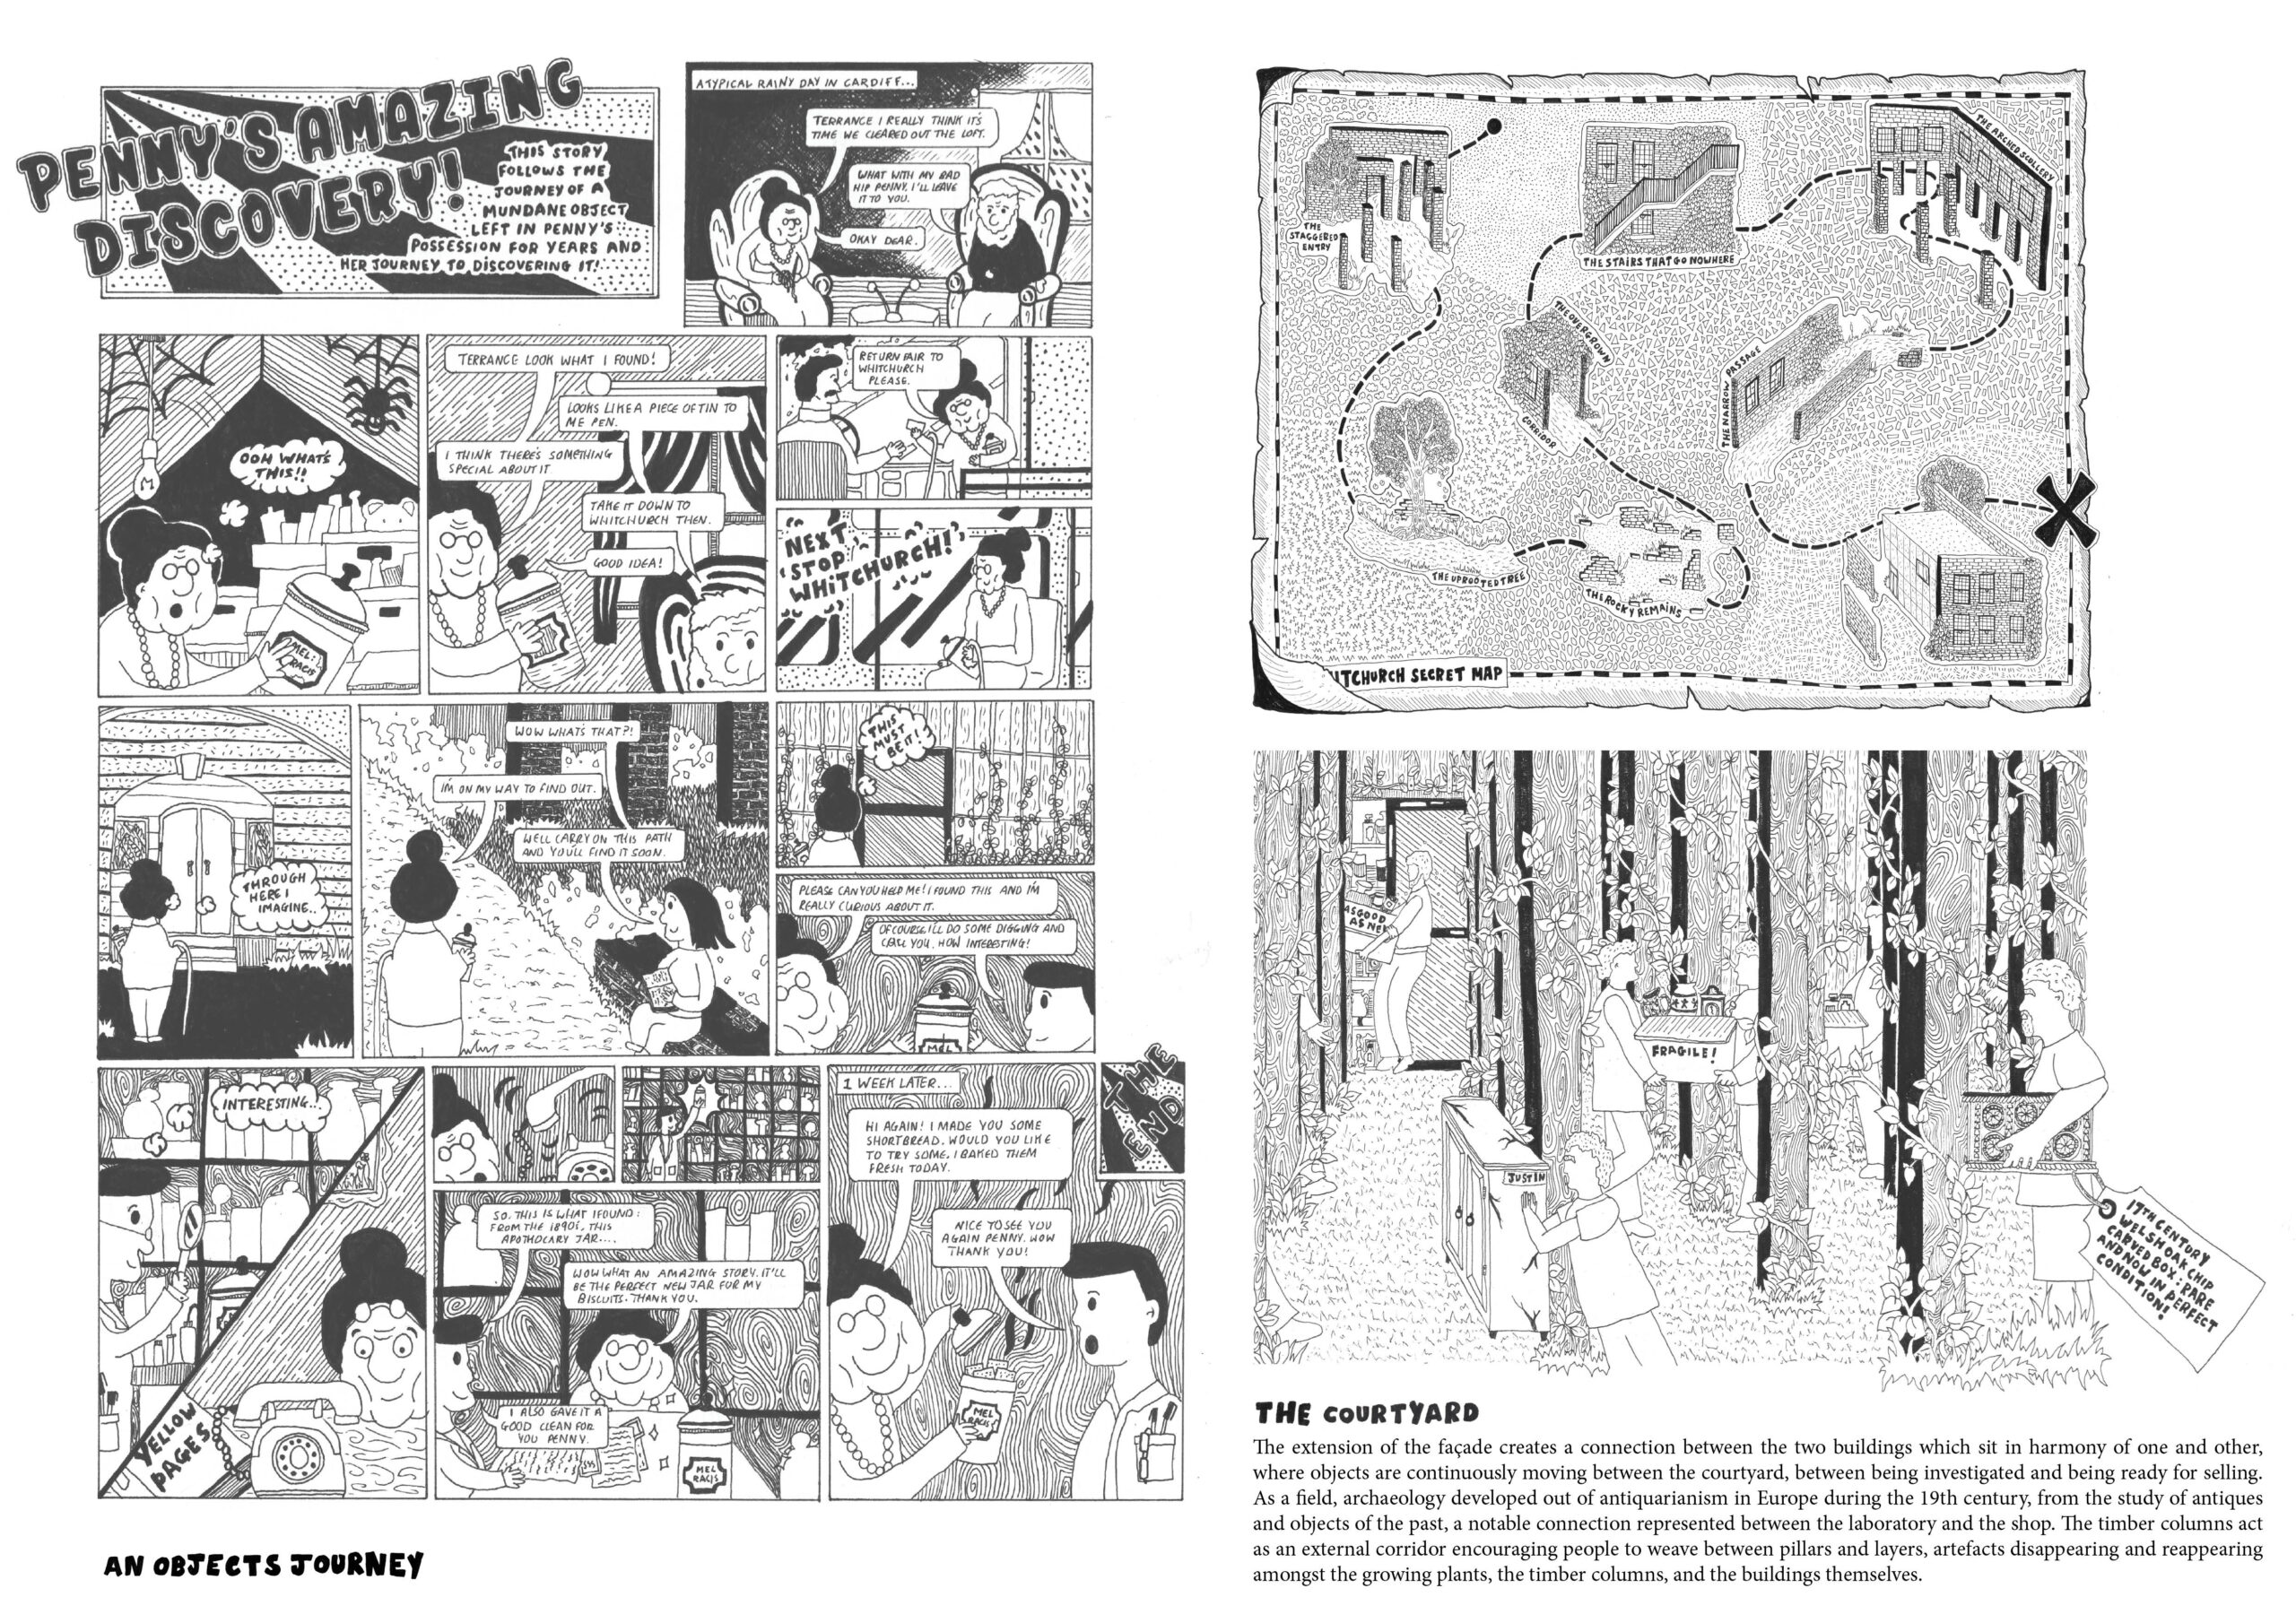 Portfolio Page with a comic of an objects journey to Whitchurch and a perspective drawing of the courtyard space.